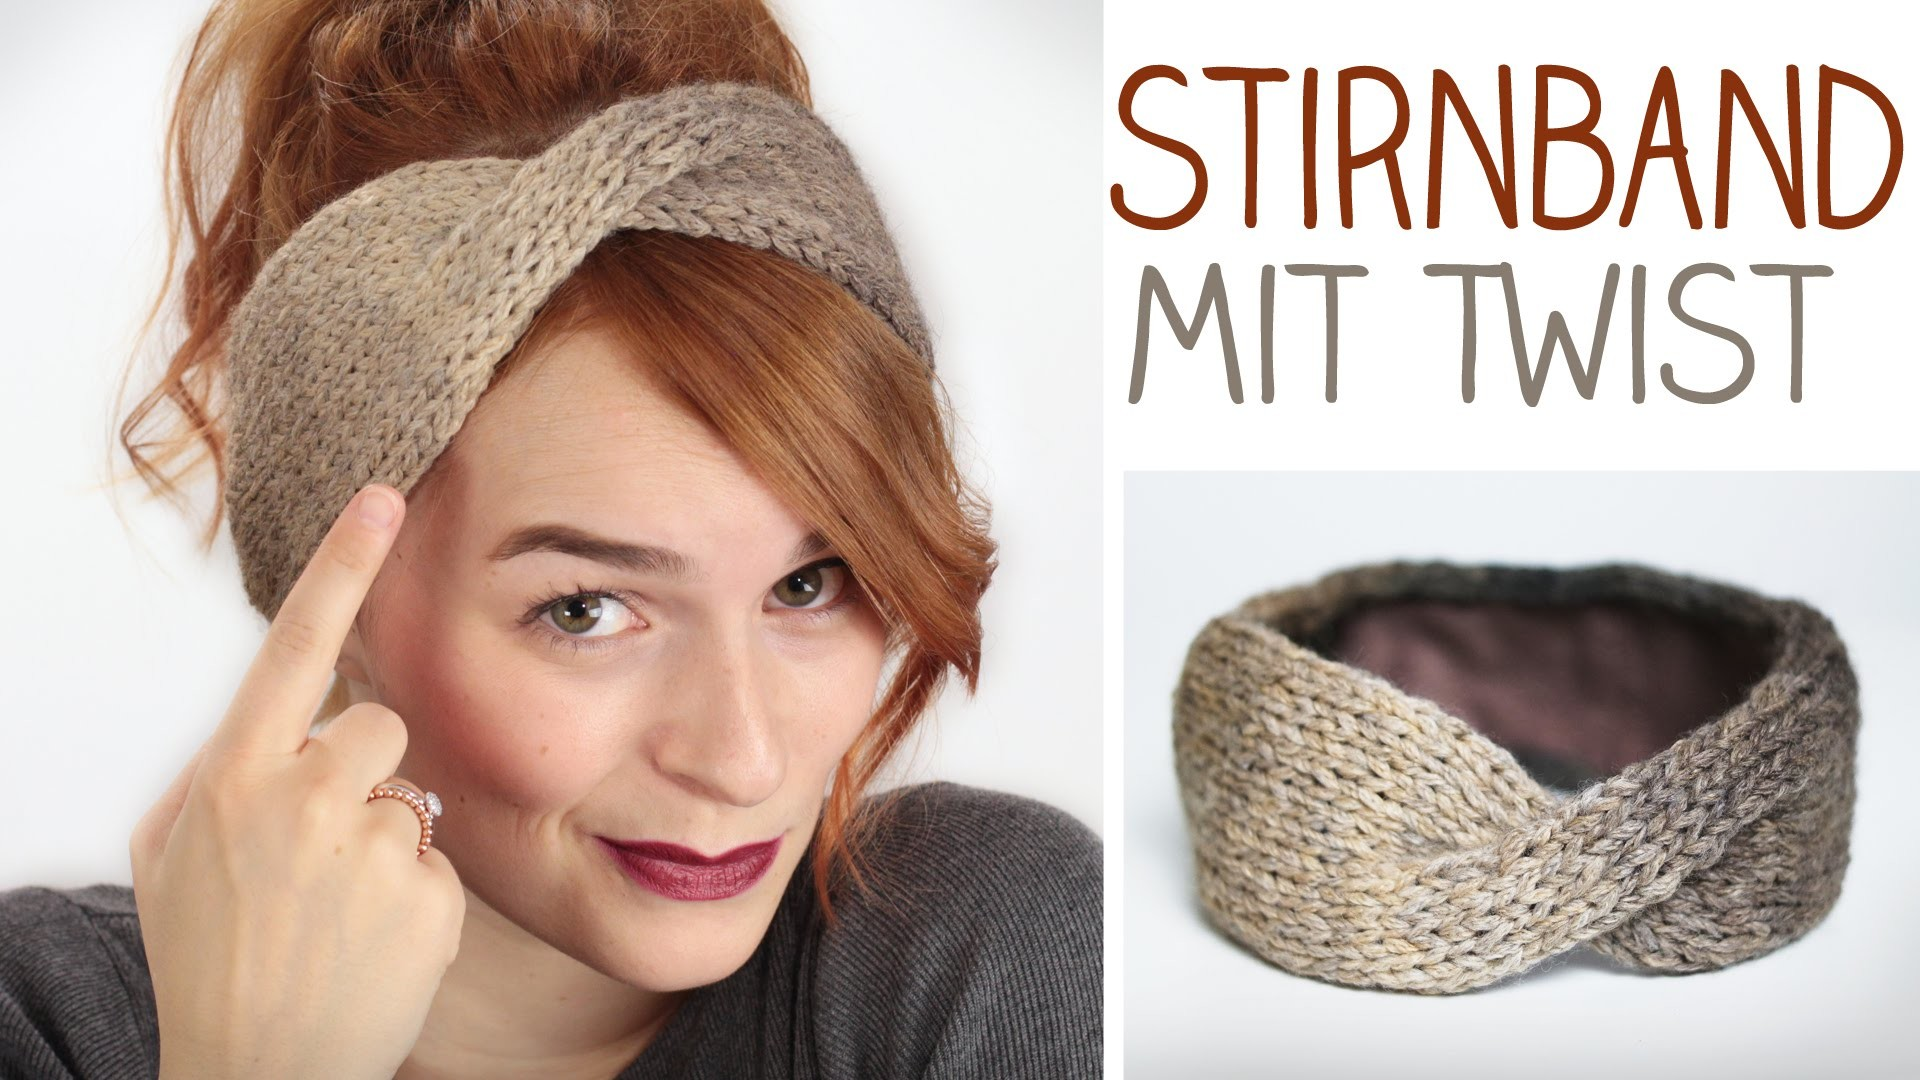 diy stirnband mit twist stricken f r anf nger u modefreaks gef ttert im winter alive4fashion. Black Bedroom Furniture Sets. Home Design Ideas